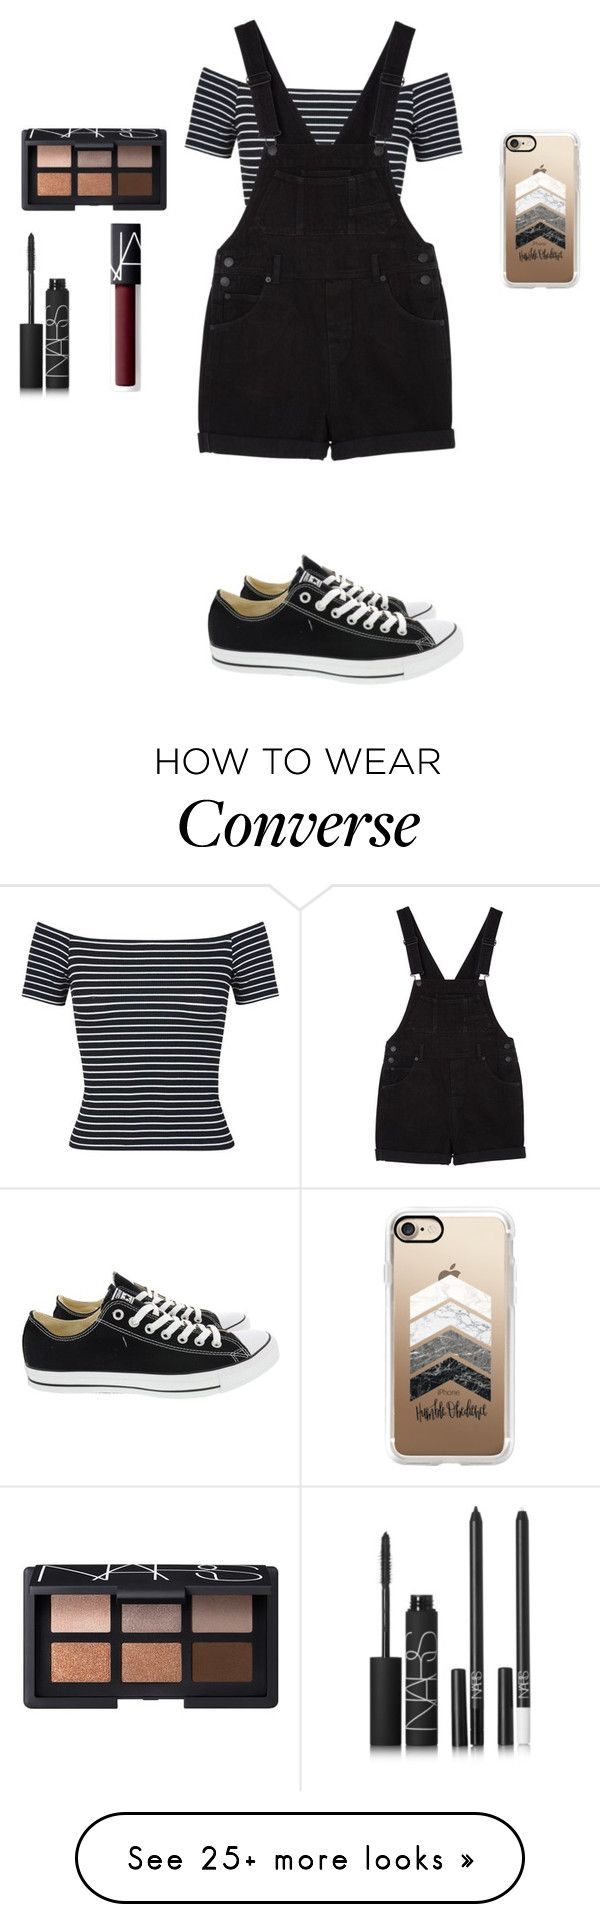 """❤️"" by smoorestsweet on Polyvore featuring Miss Selfridge, Monki, Converse, NARS Cosmetics and Casetify"